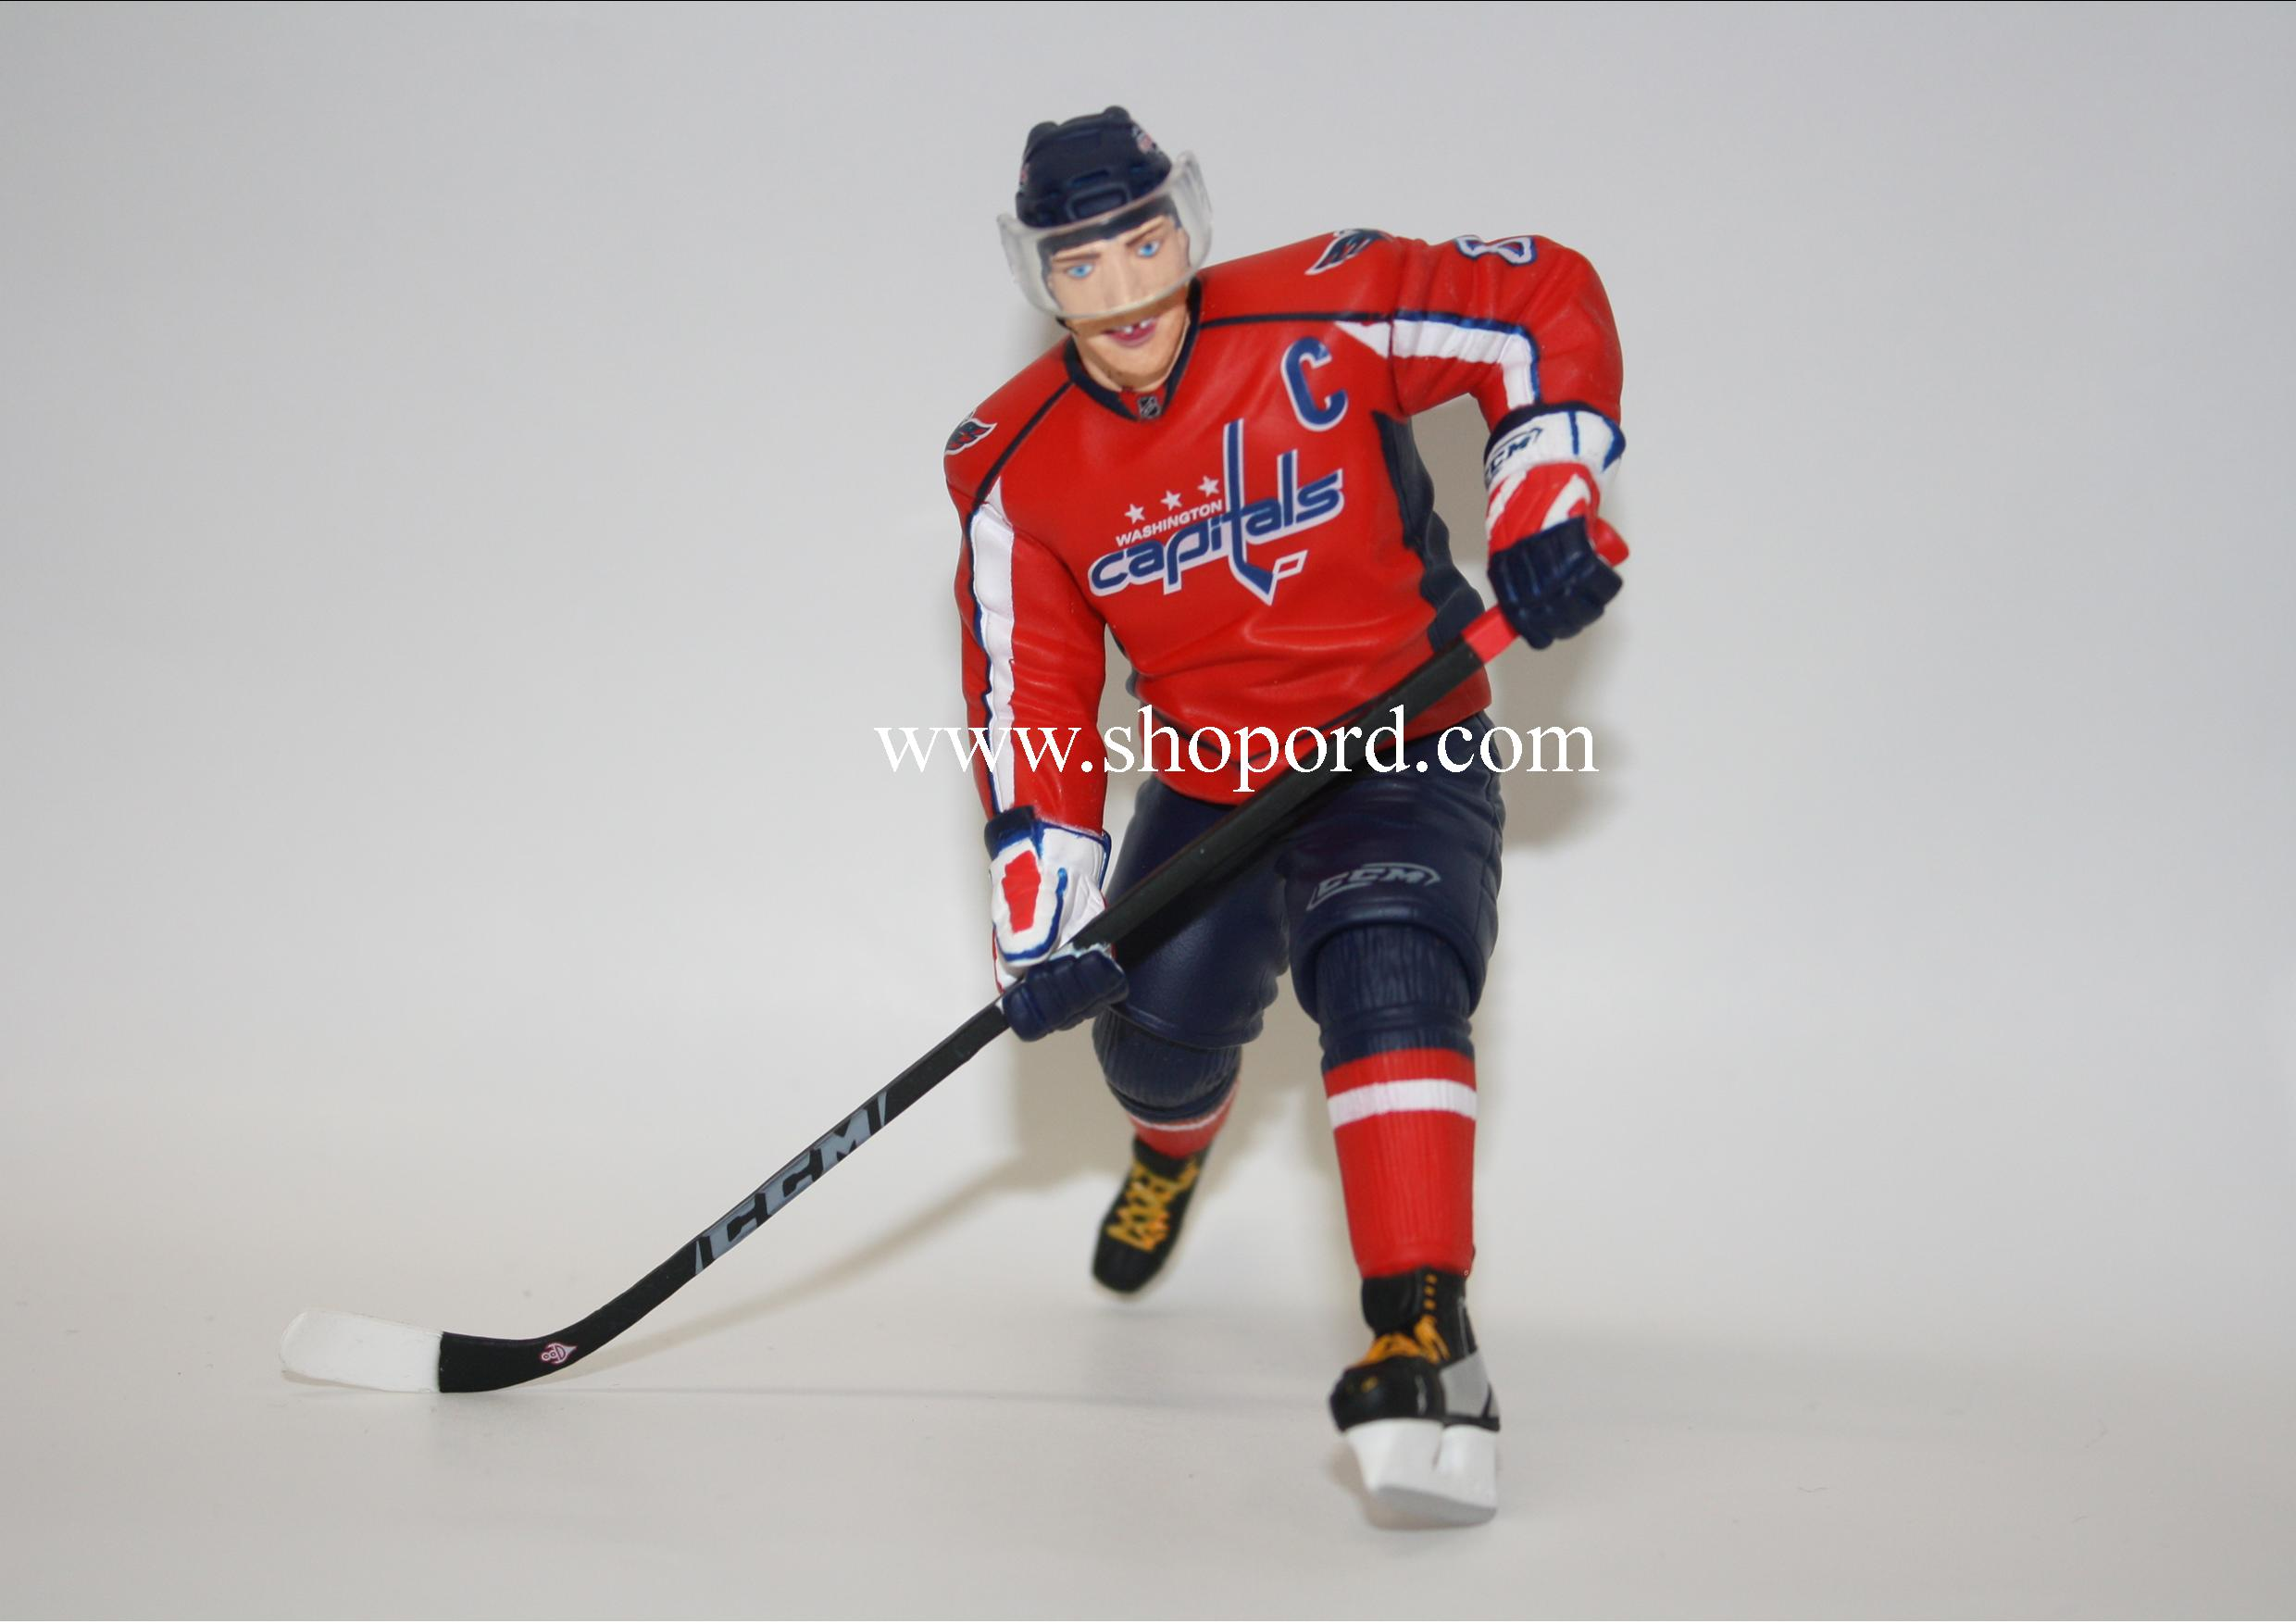 Hallmark 2011 Alex Ovechkin Ornament Hockey Player for Washington Capitals  QXI2217. View detailed images (2). Click to zoom 740cff212c9b